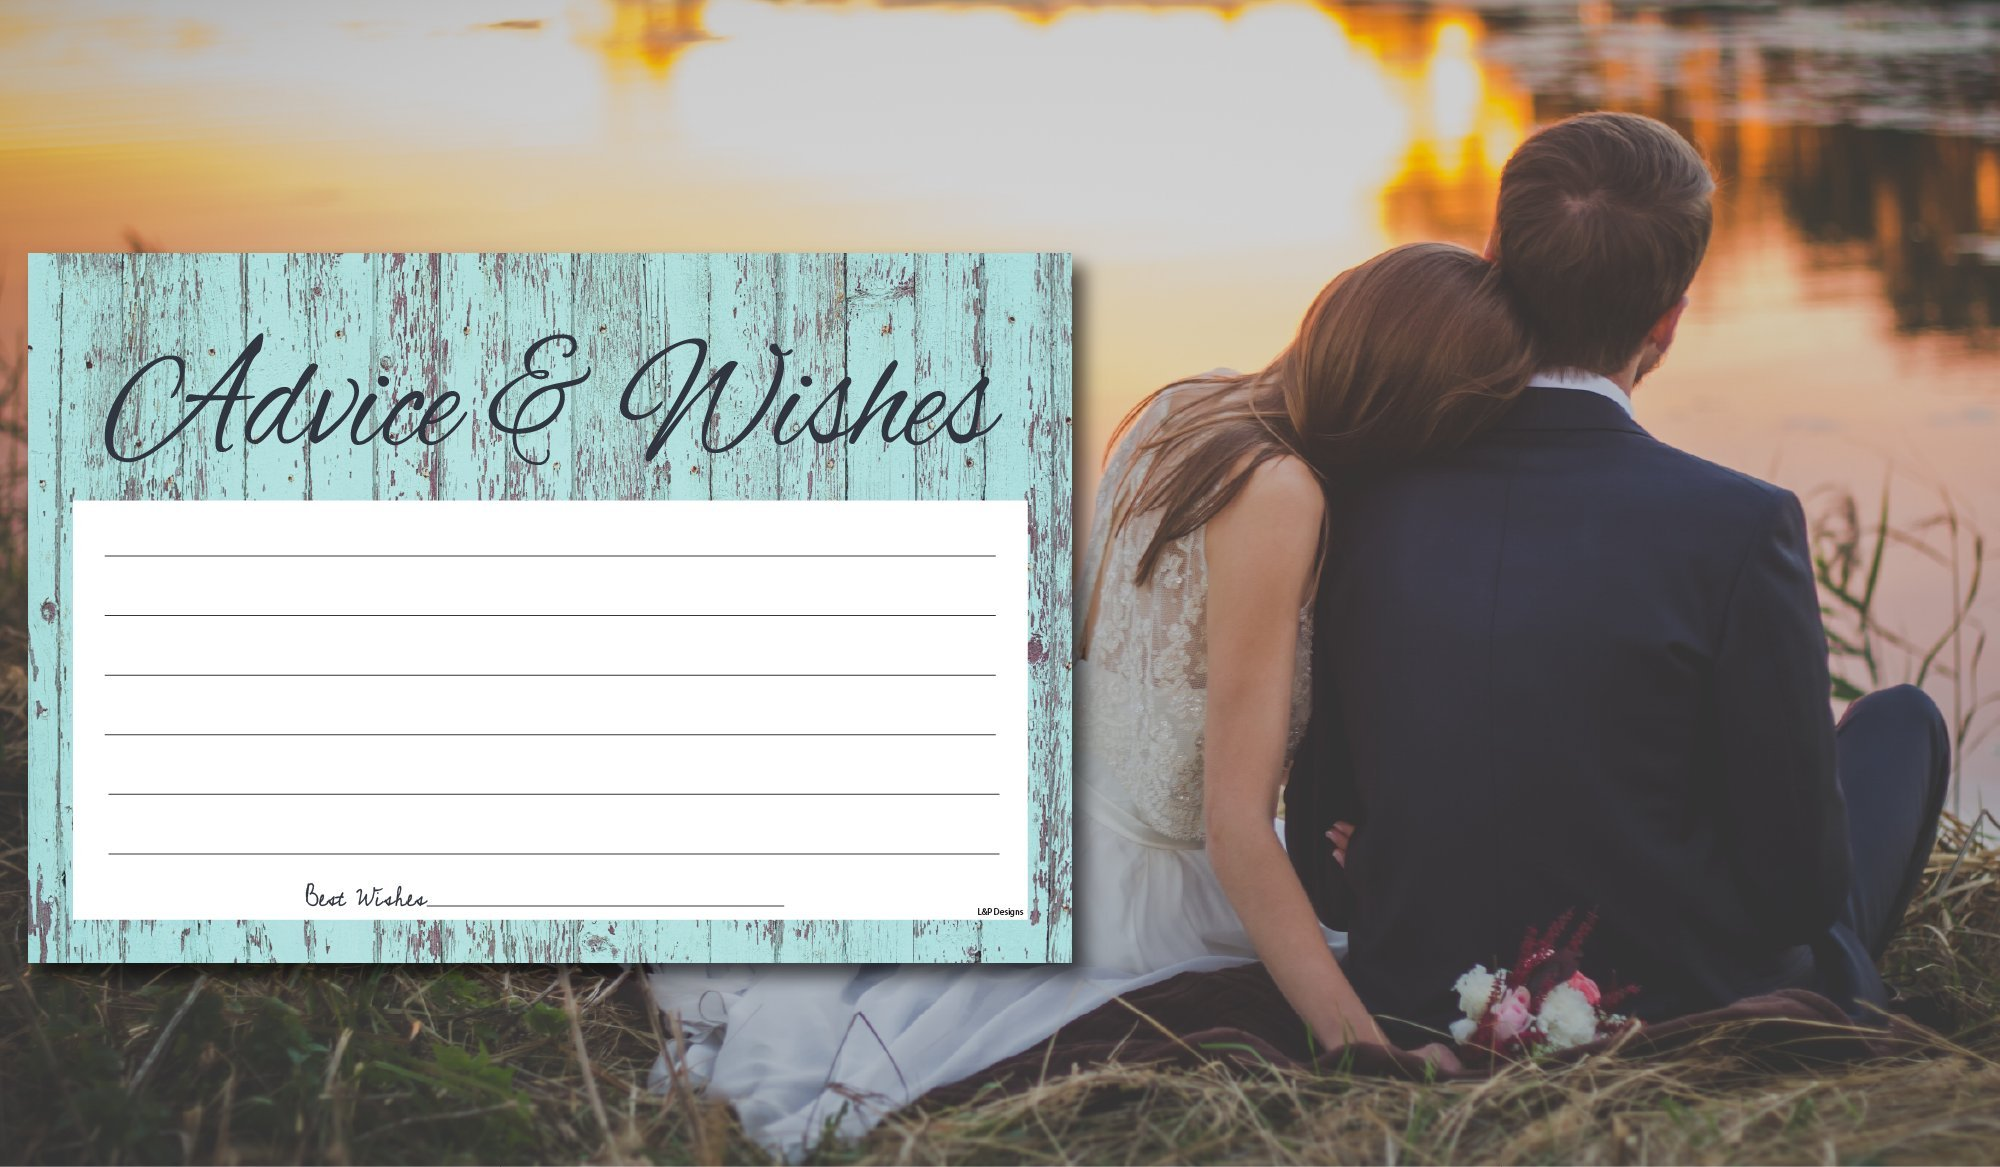 50 Rustic Blue Wood Gender Neutral Advice And Wishes Cards, Any Occasion, Two Grooms or Two Brides Advice Cards, Wedding Advice Cards, Bridal Shower, Advice For The Bride, Baby Shower Advice Cards by L&P Designs (Image #5)